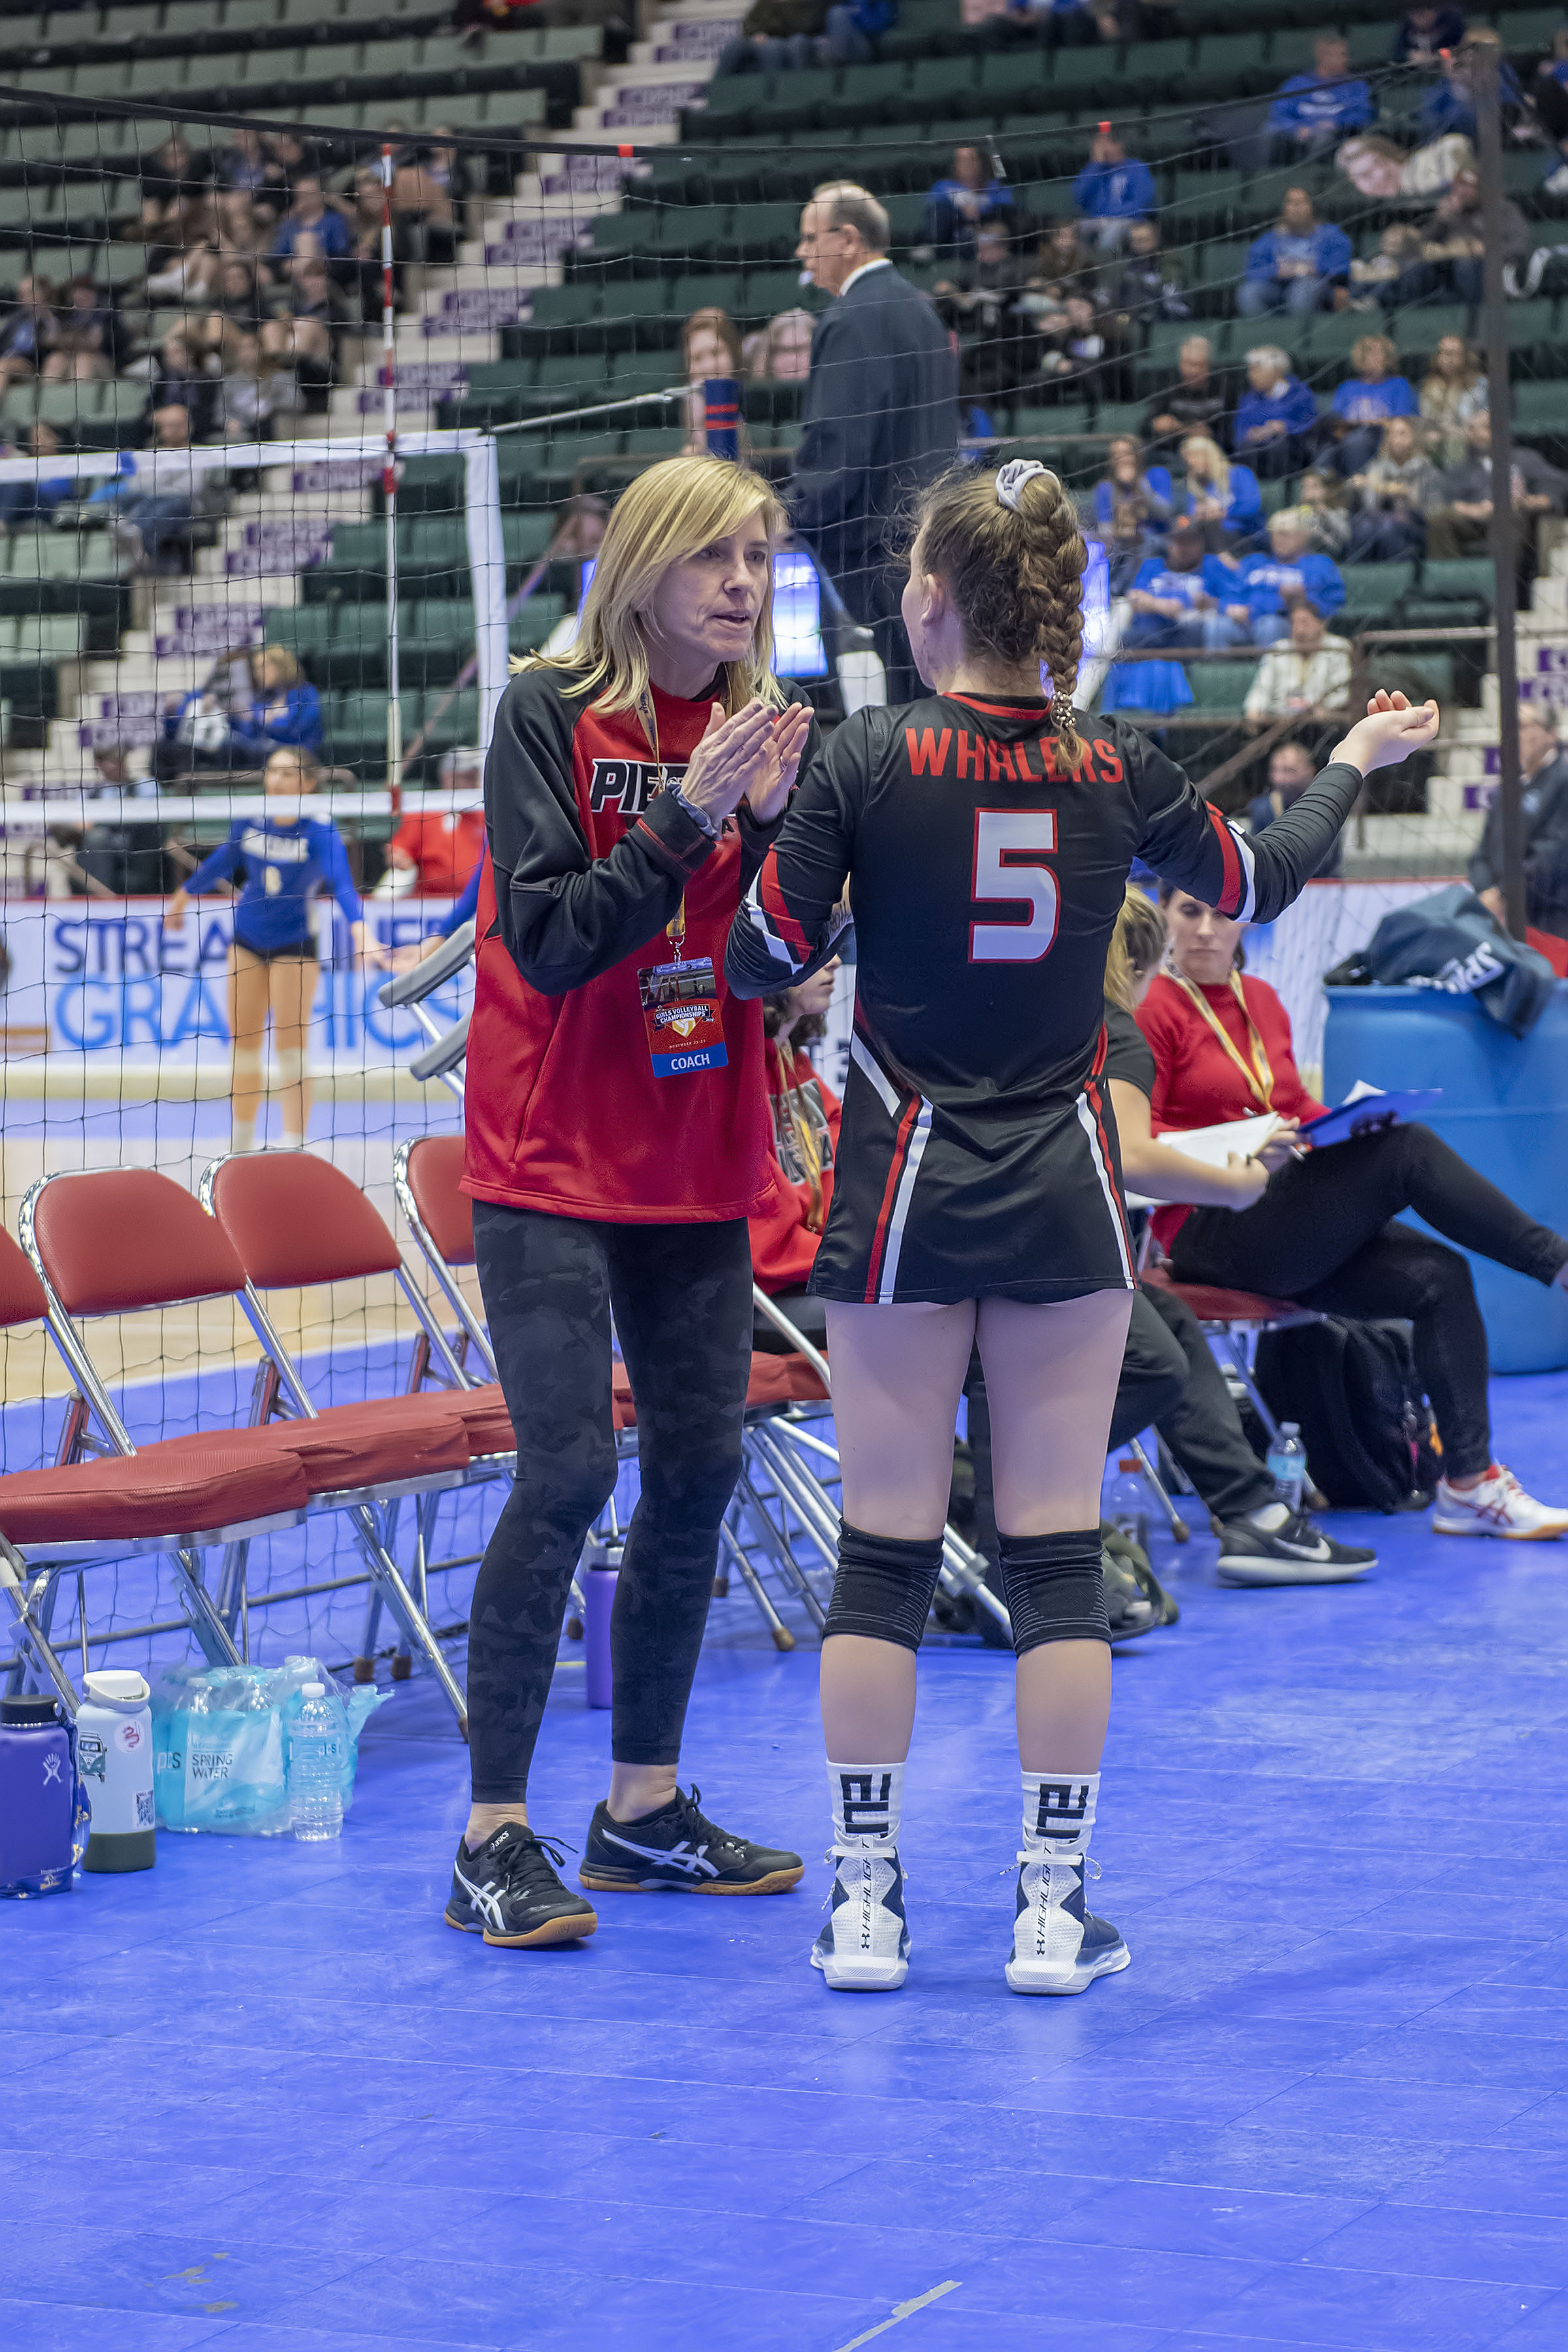 Pierson head coach Donna Fischer gives Sofia Mancino a pep talk during a timeout in the Lady Whalers' second match of the day against the Valhalla